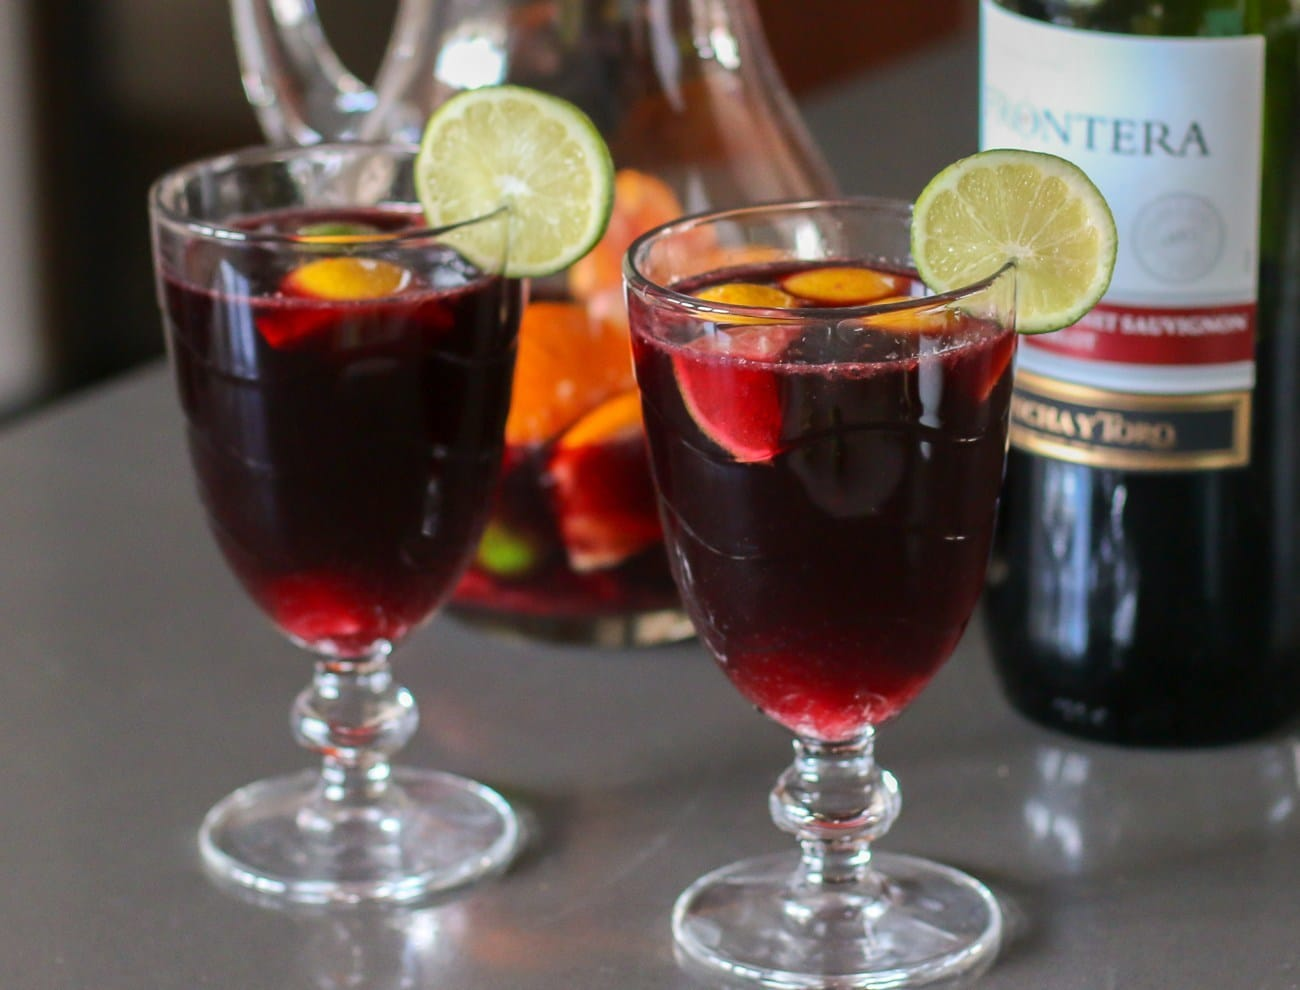 Pour ginger ale into the sangria wine mixture to finish.